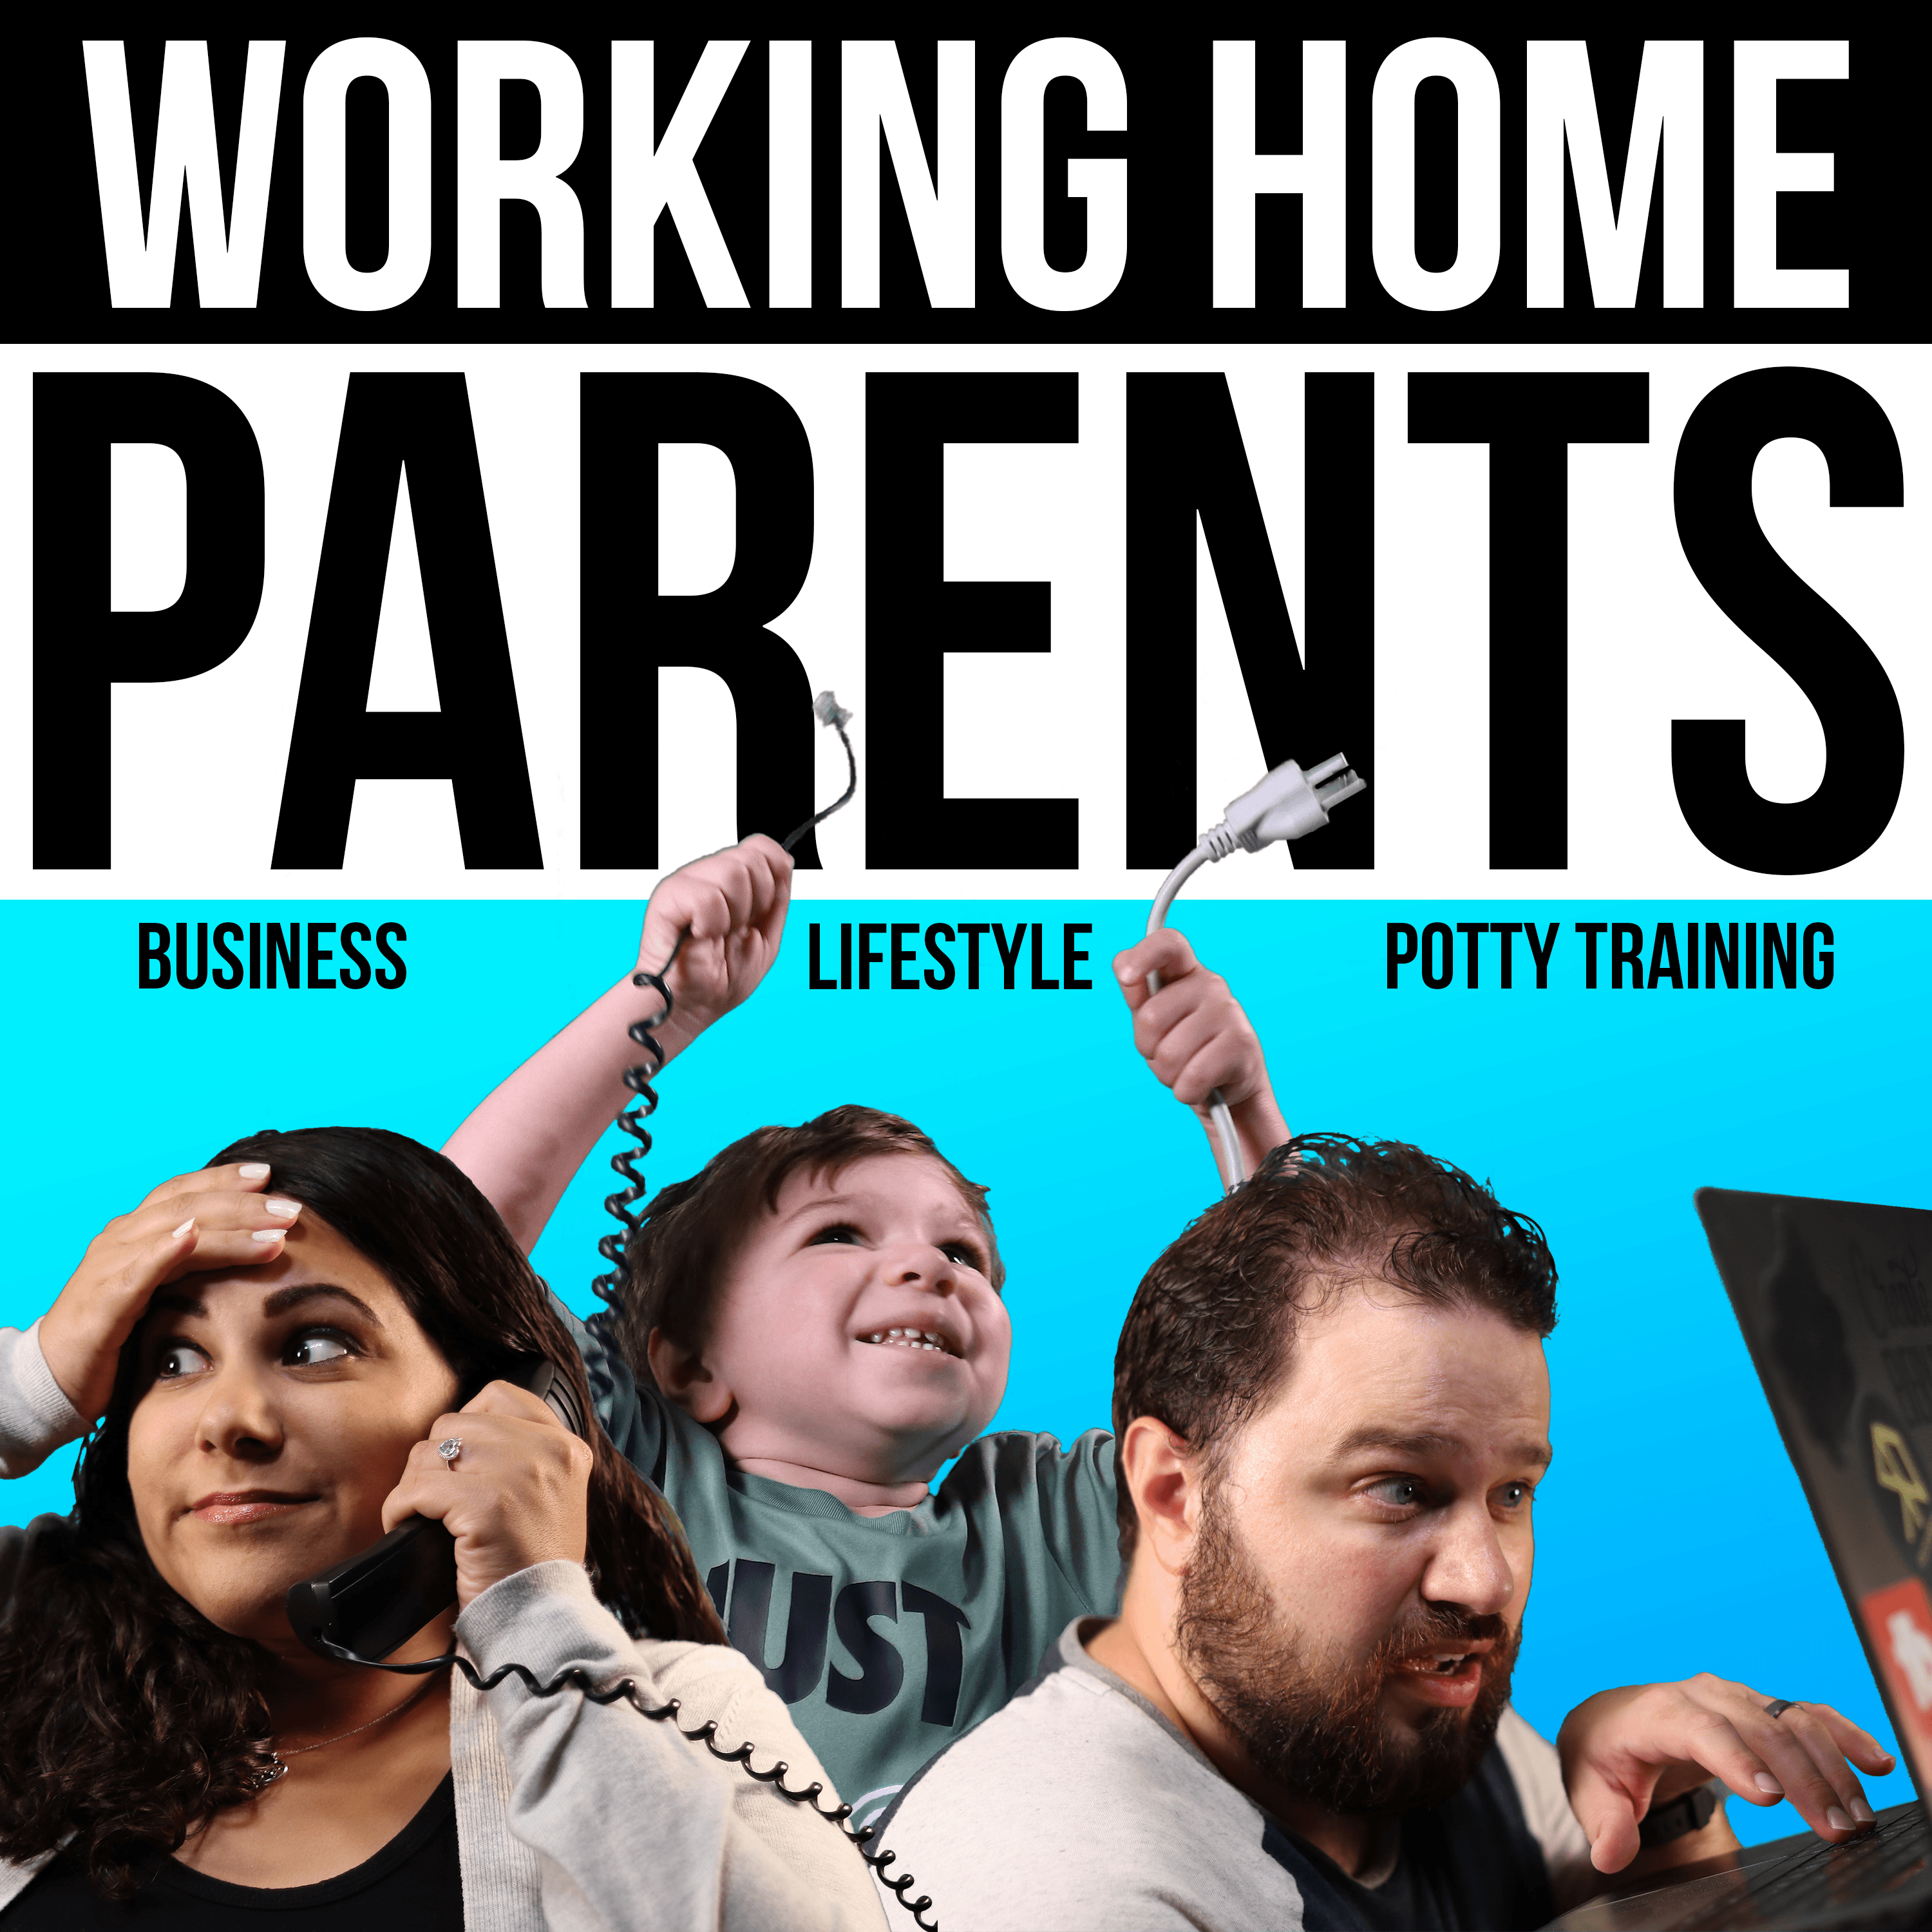 Working Home Parents